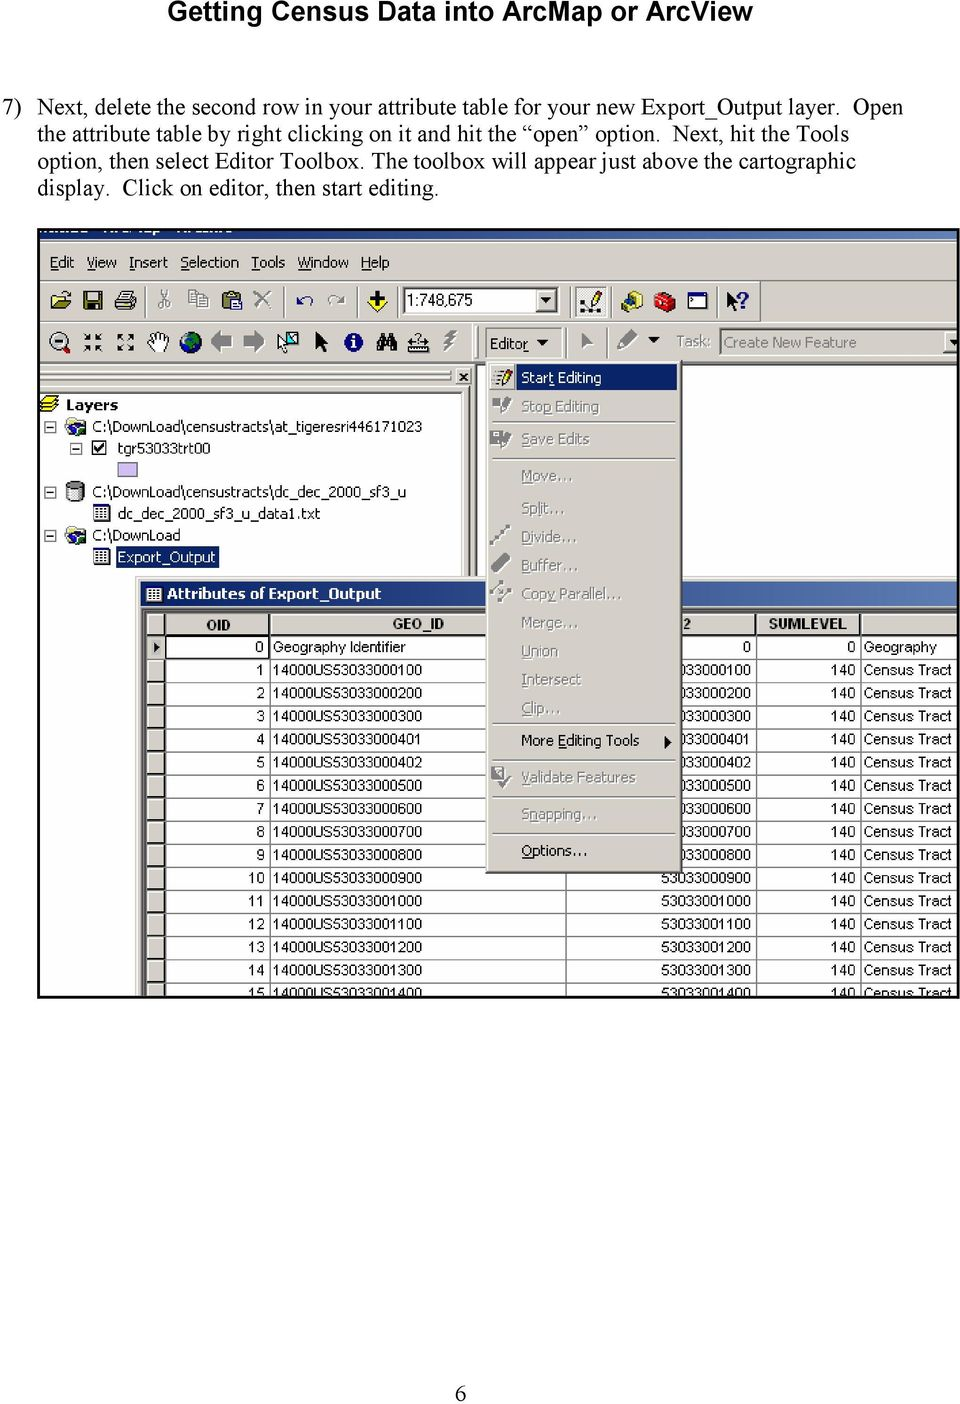 Getting Census Data into ArcMap or ArcView  Obtaining